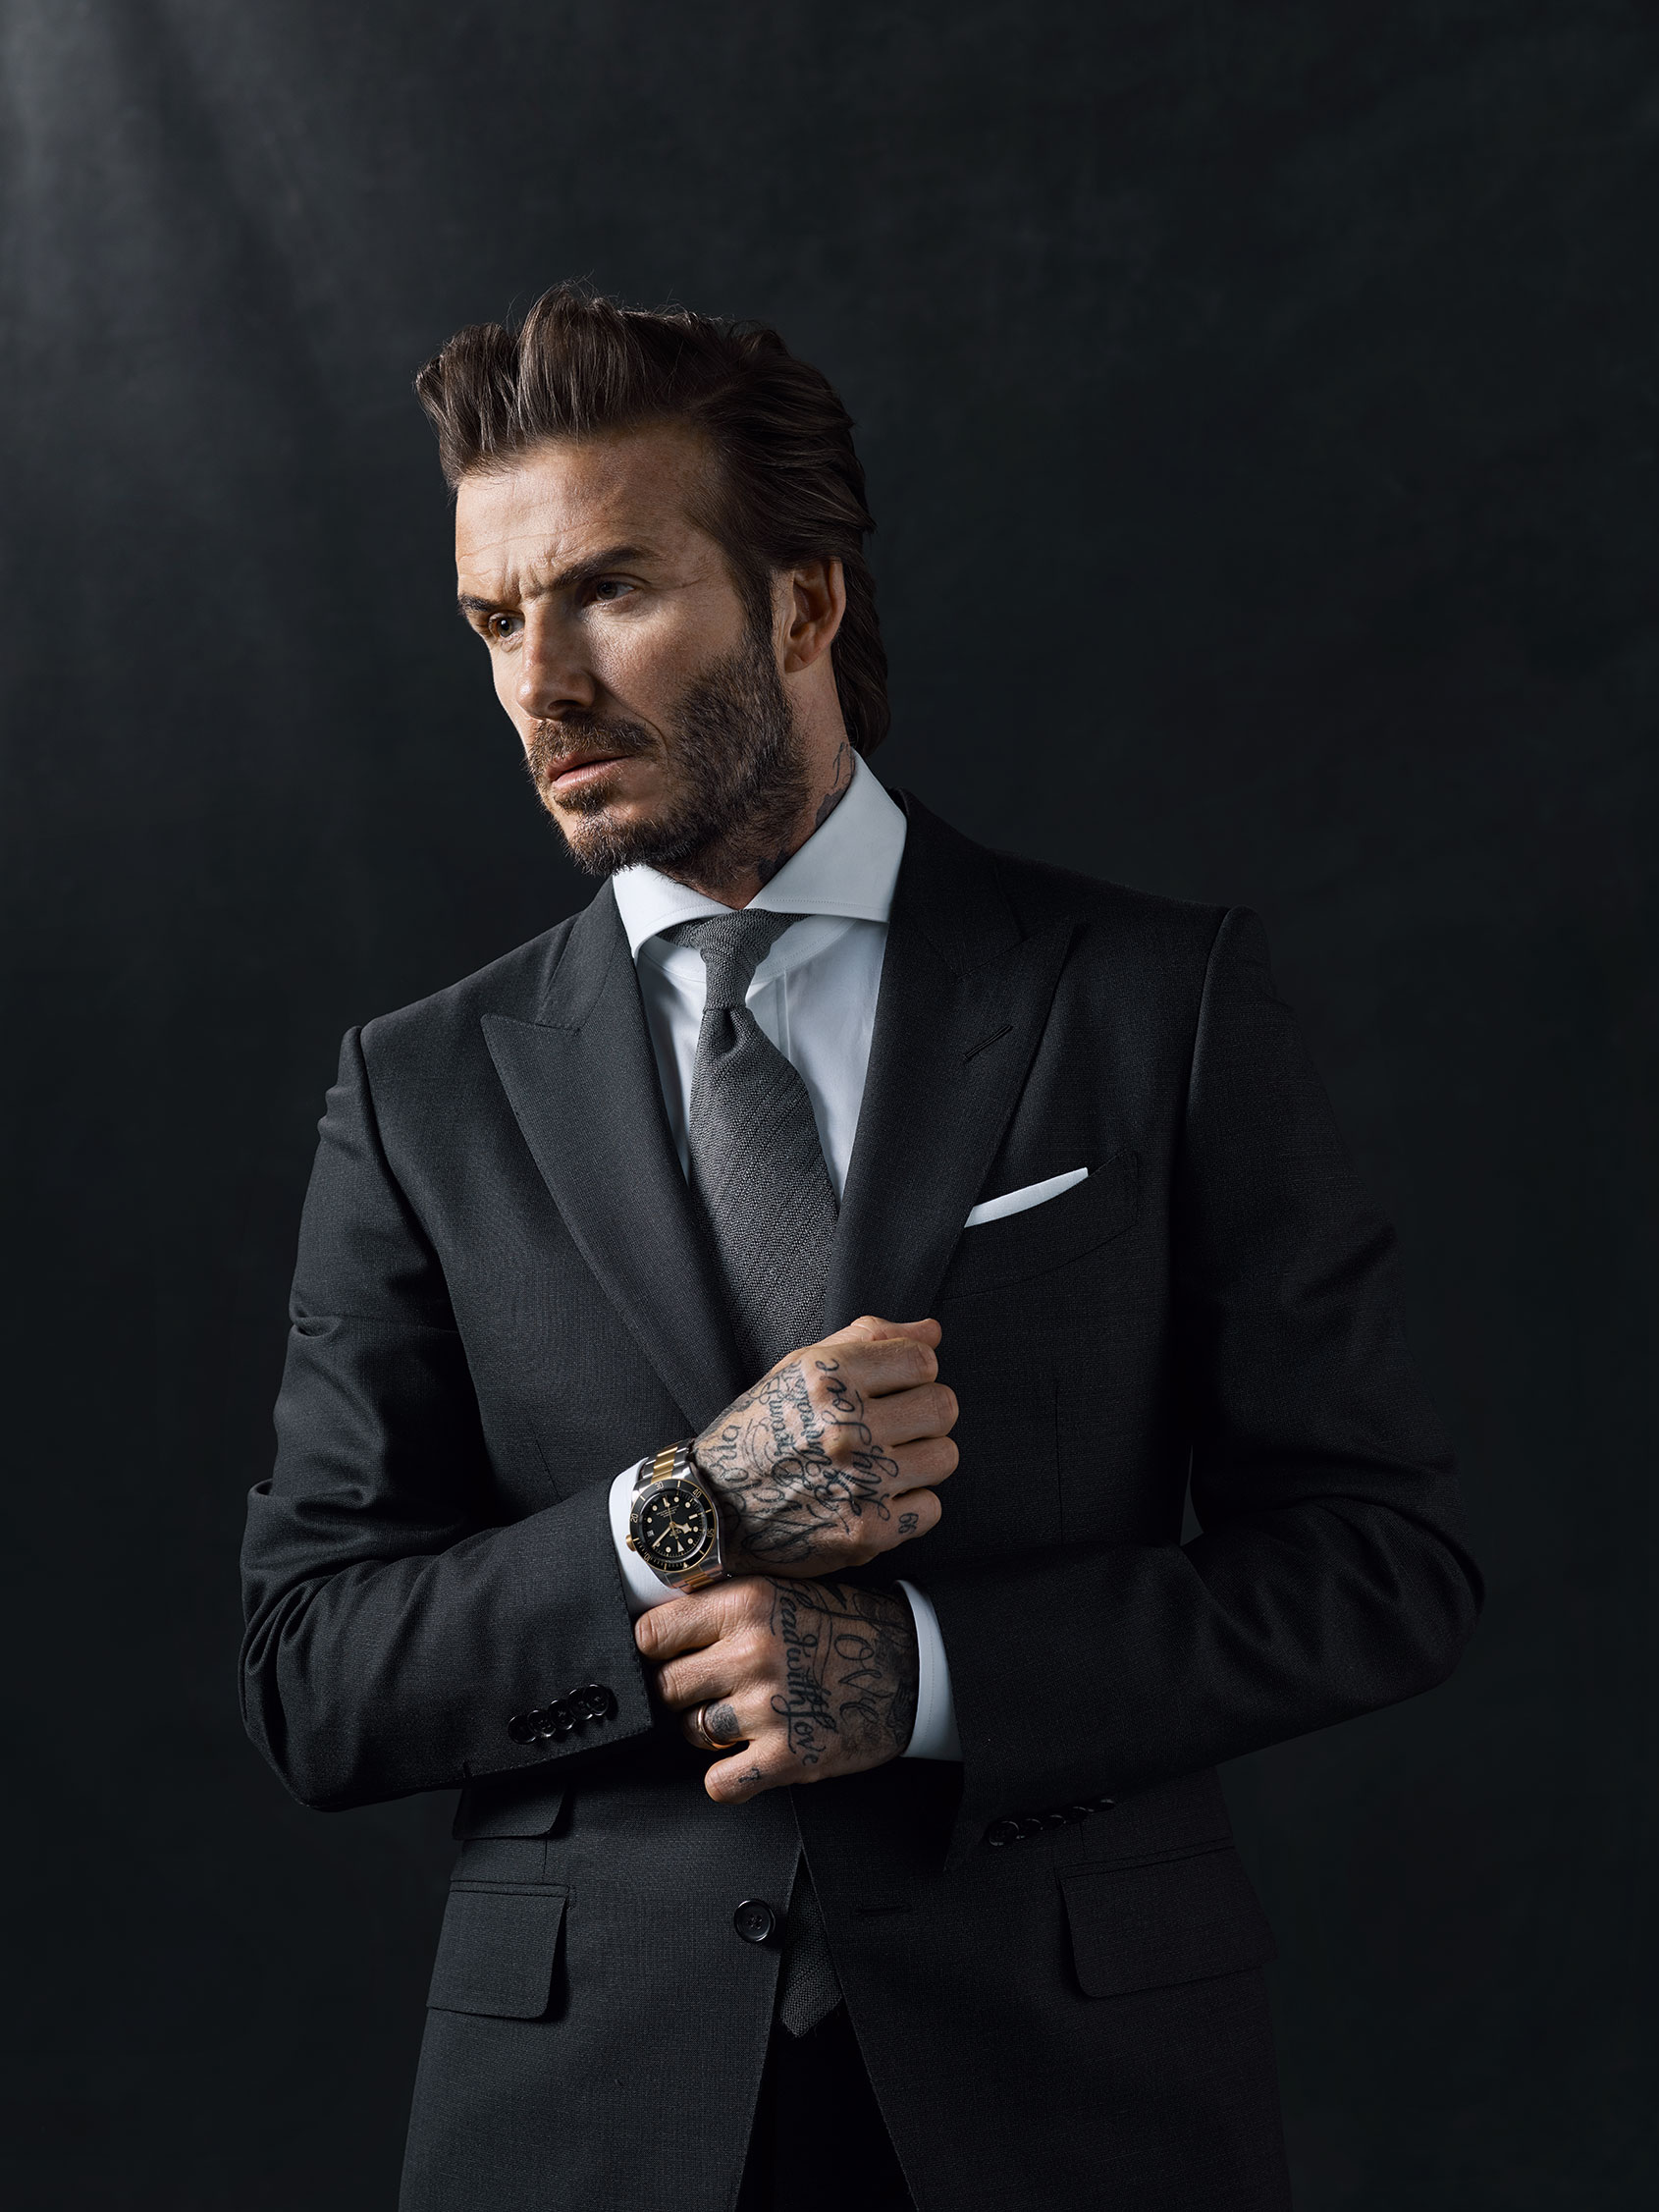 News Tudor Announces David Beckham As New Brand